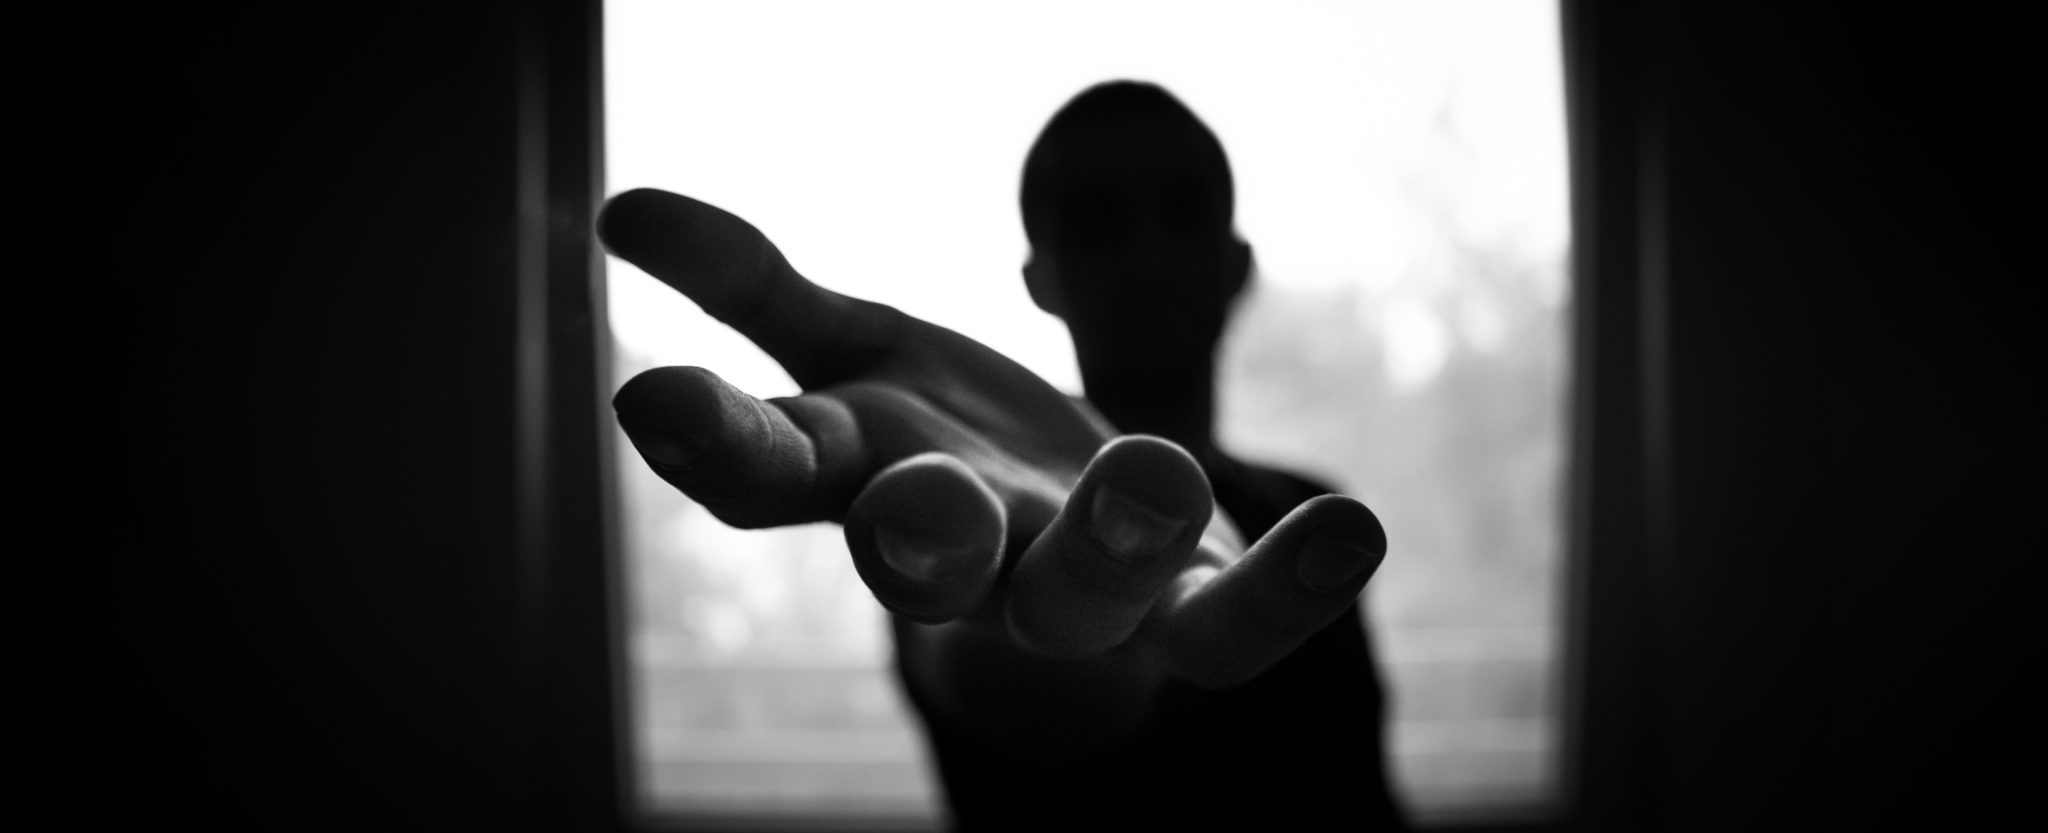 Silhouette of a person holding their hand out